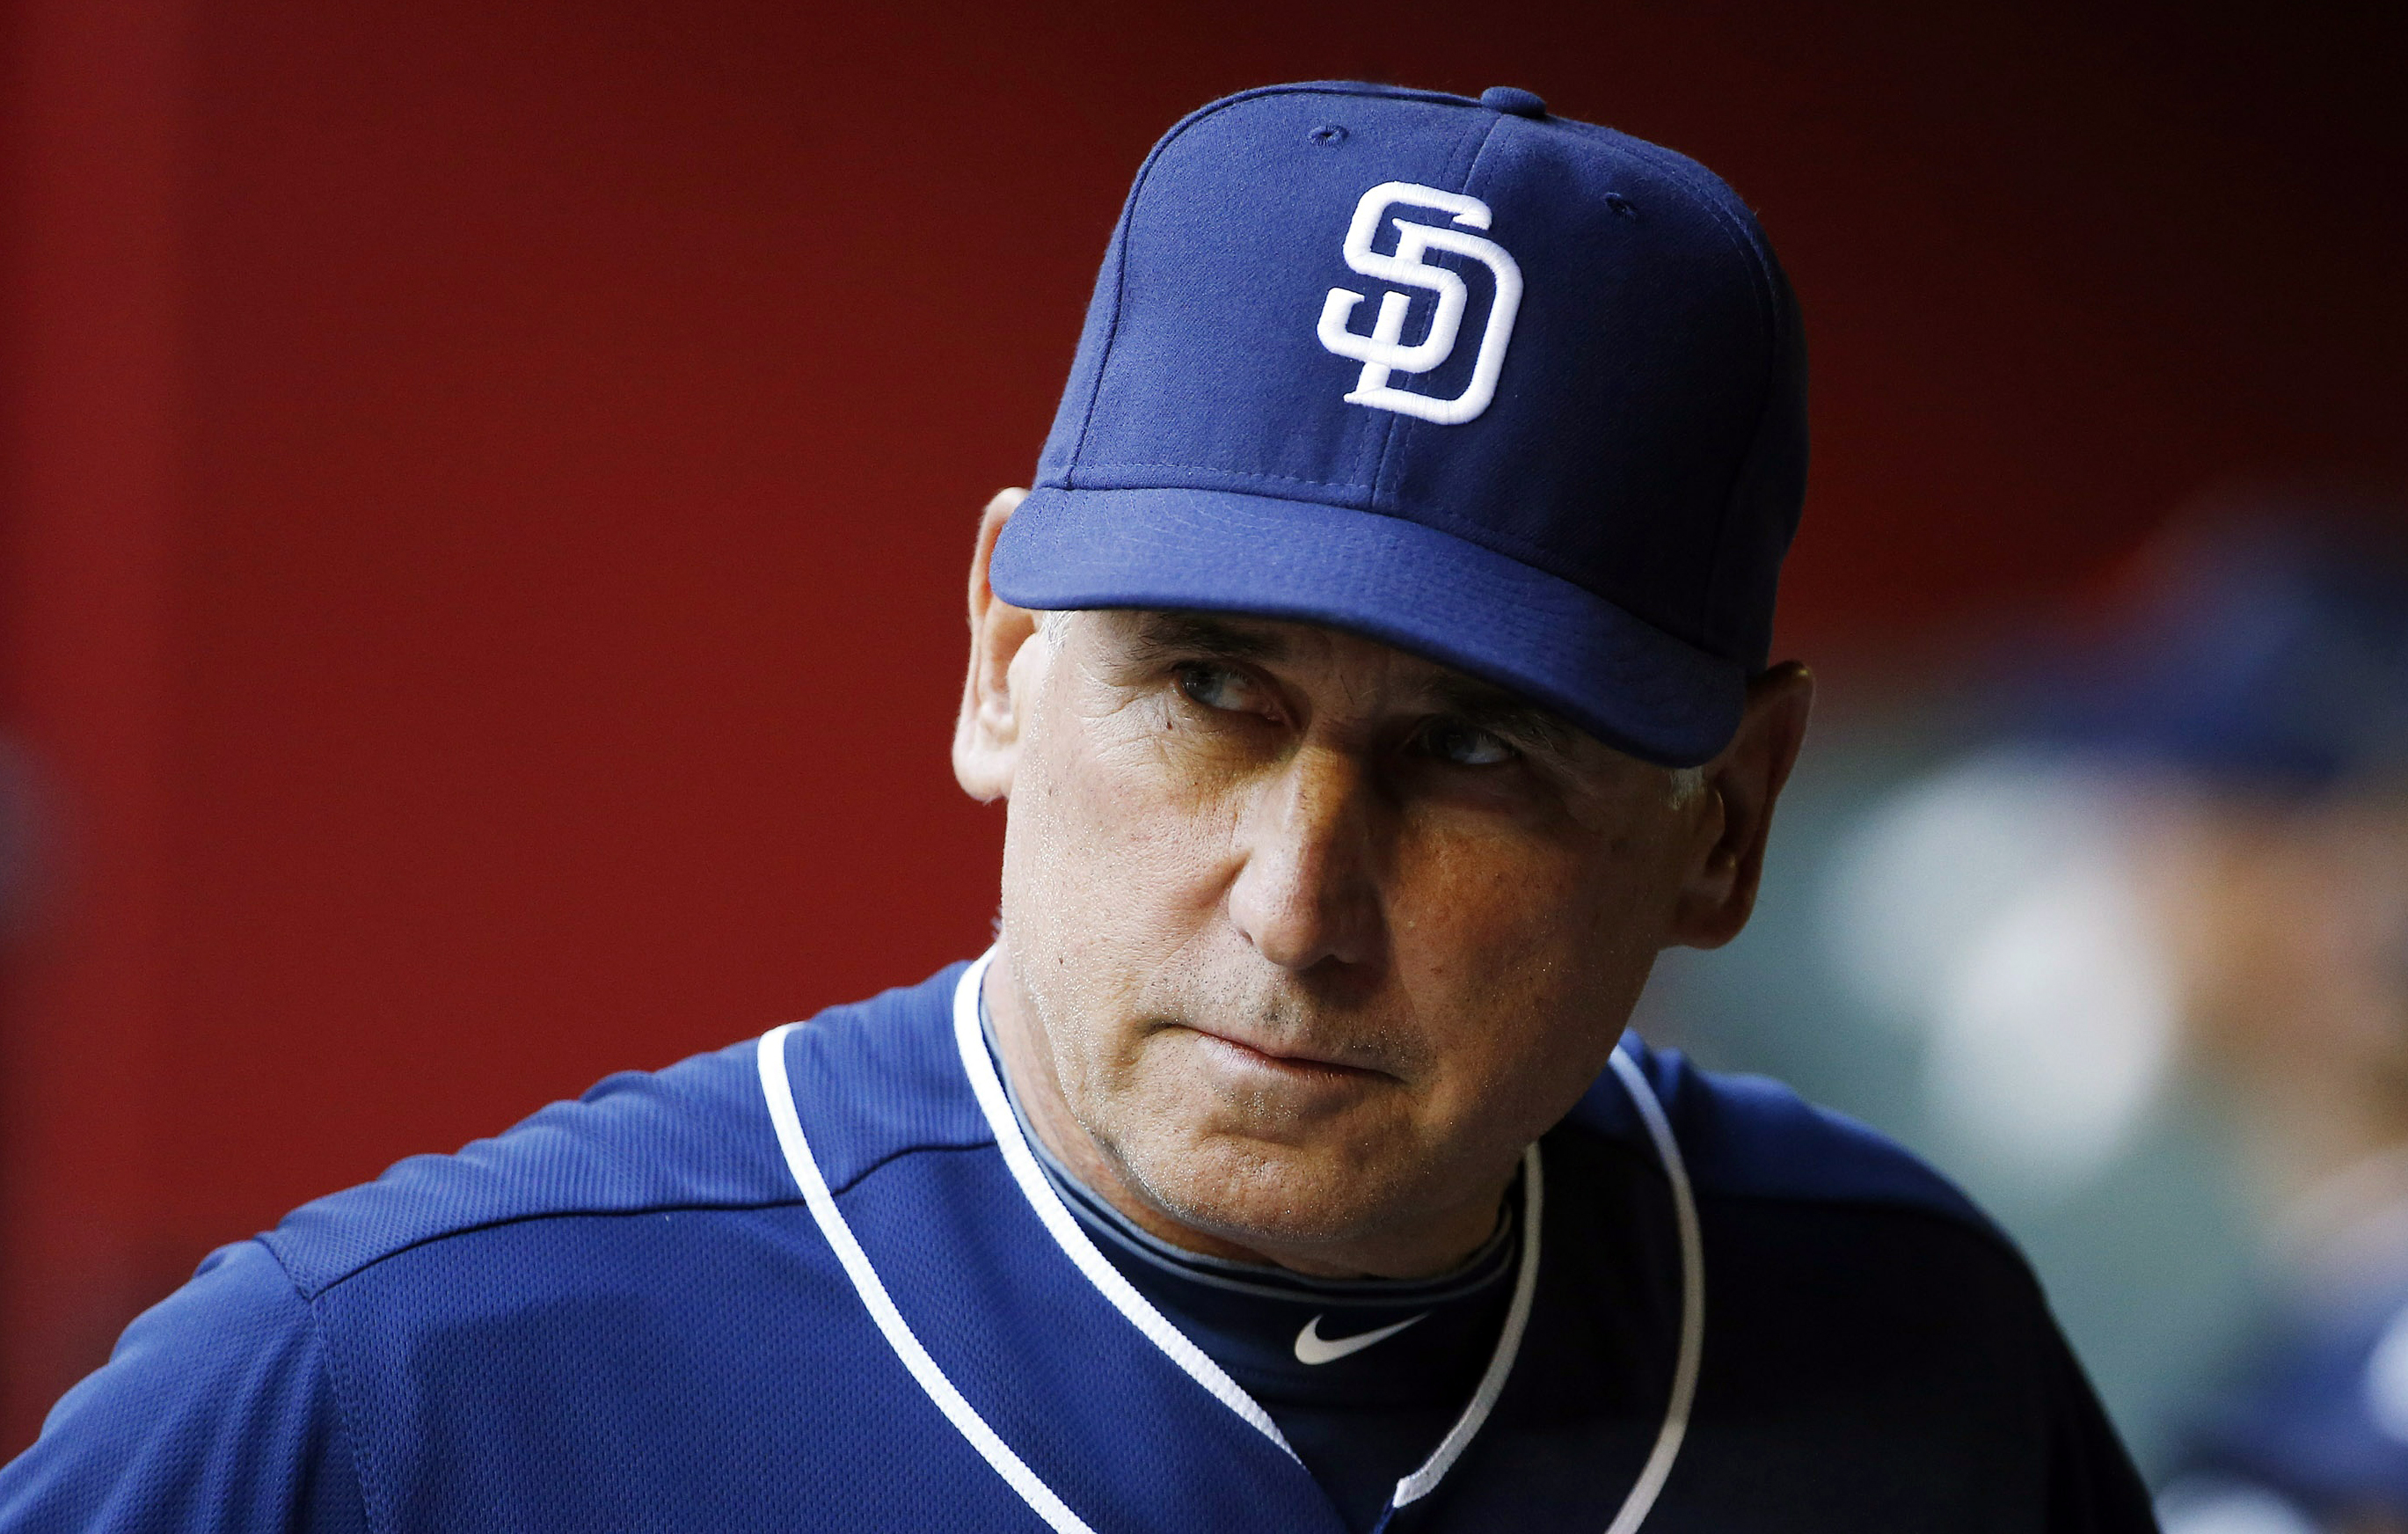 FILE - In this May 8, 2015, file photo, San Diego Padres' Bud Black paces in the dugout prior to a baseball game against the Arizona Diamondbacks in Phoenix. A person with knowledge of the situation tells The Associated Press that Bud Black has been hired